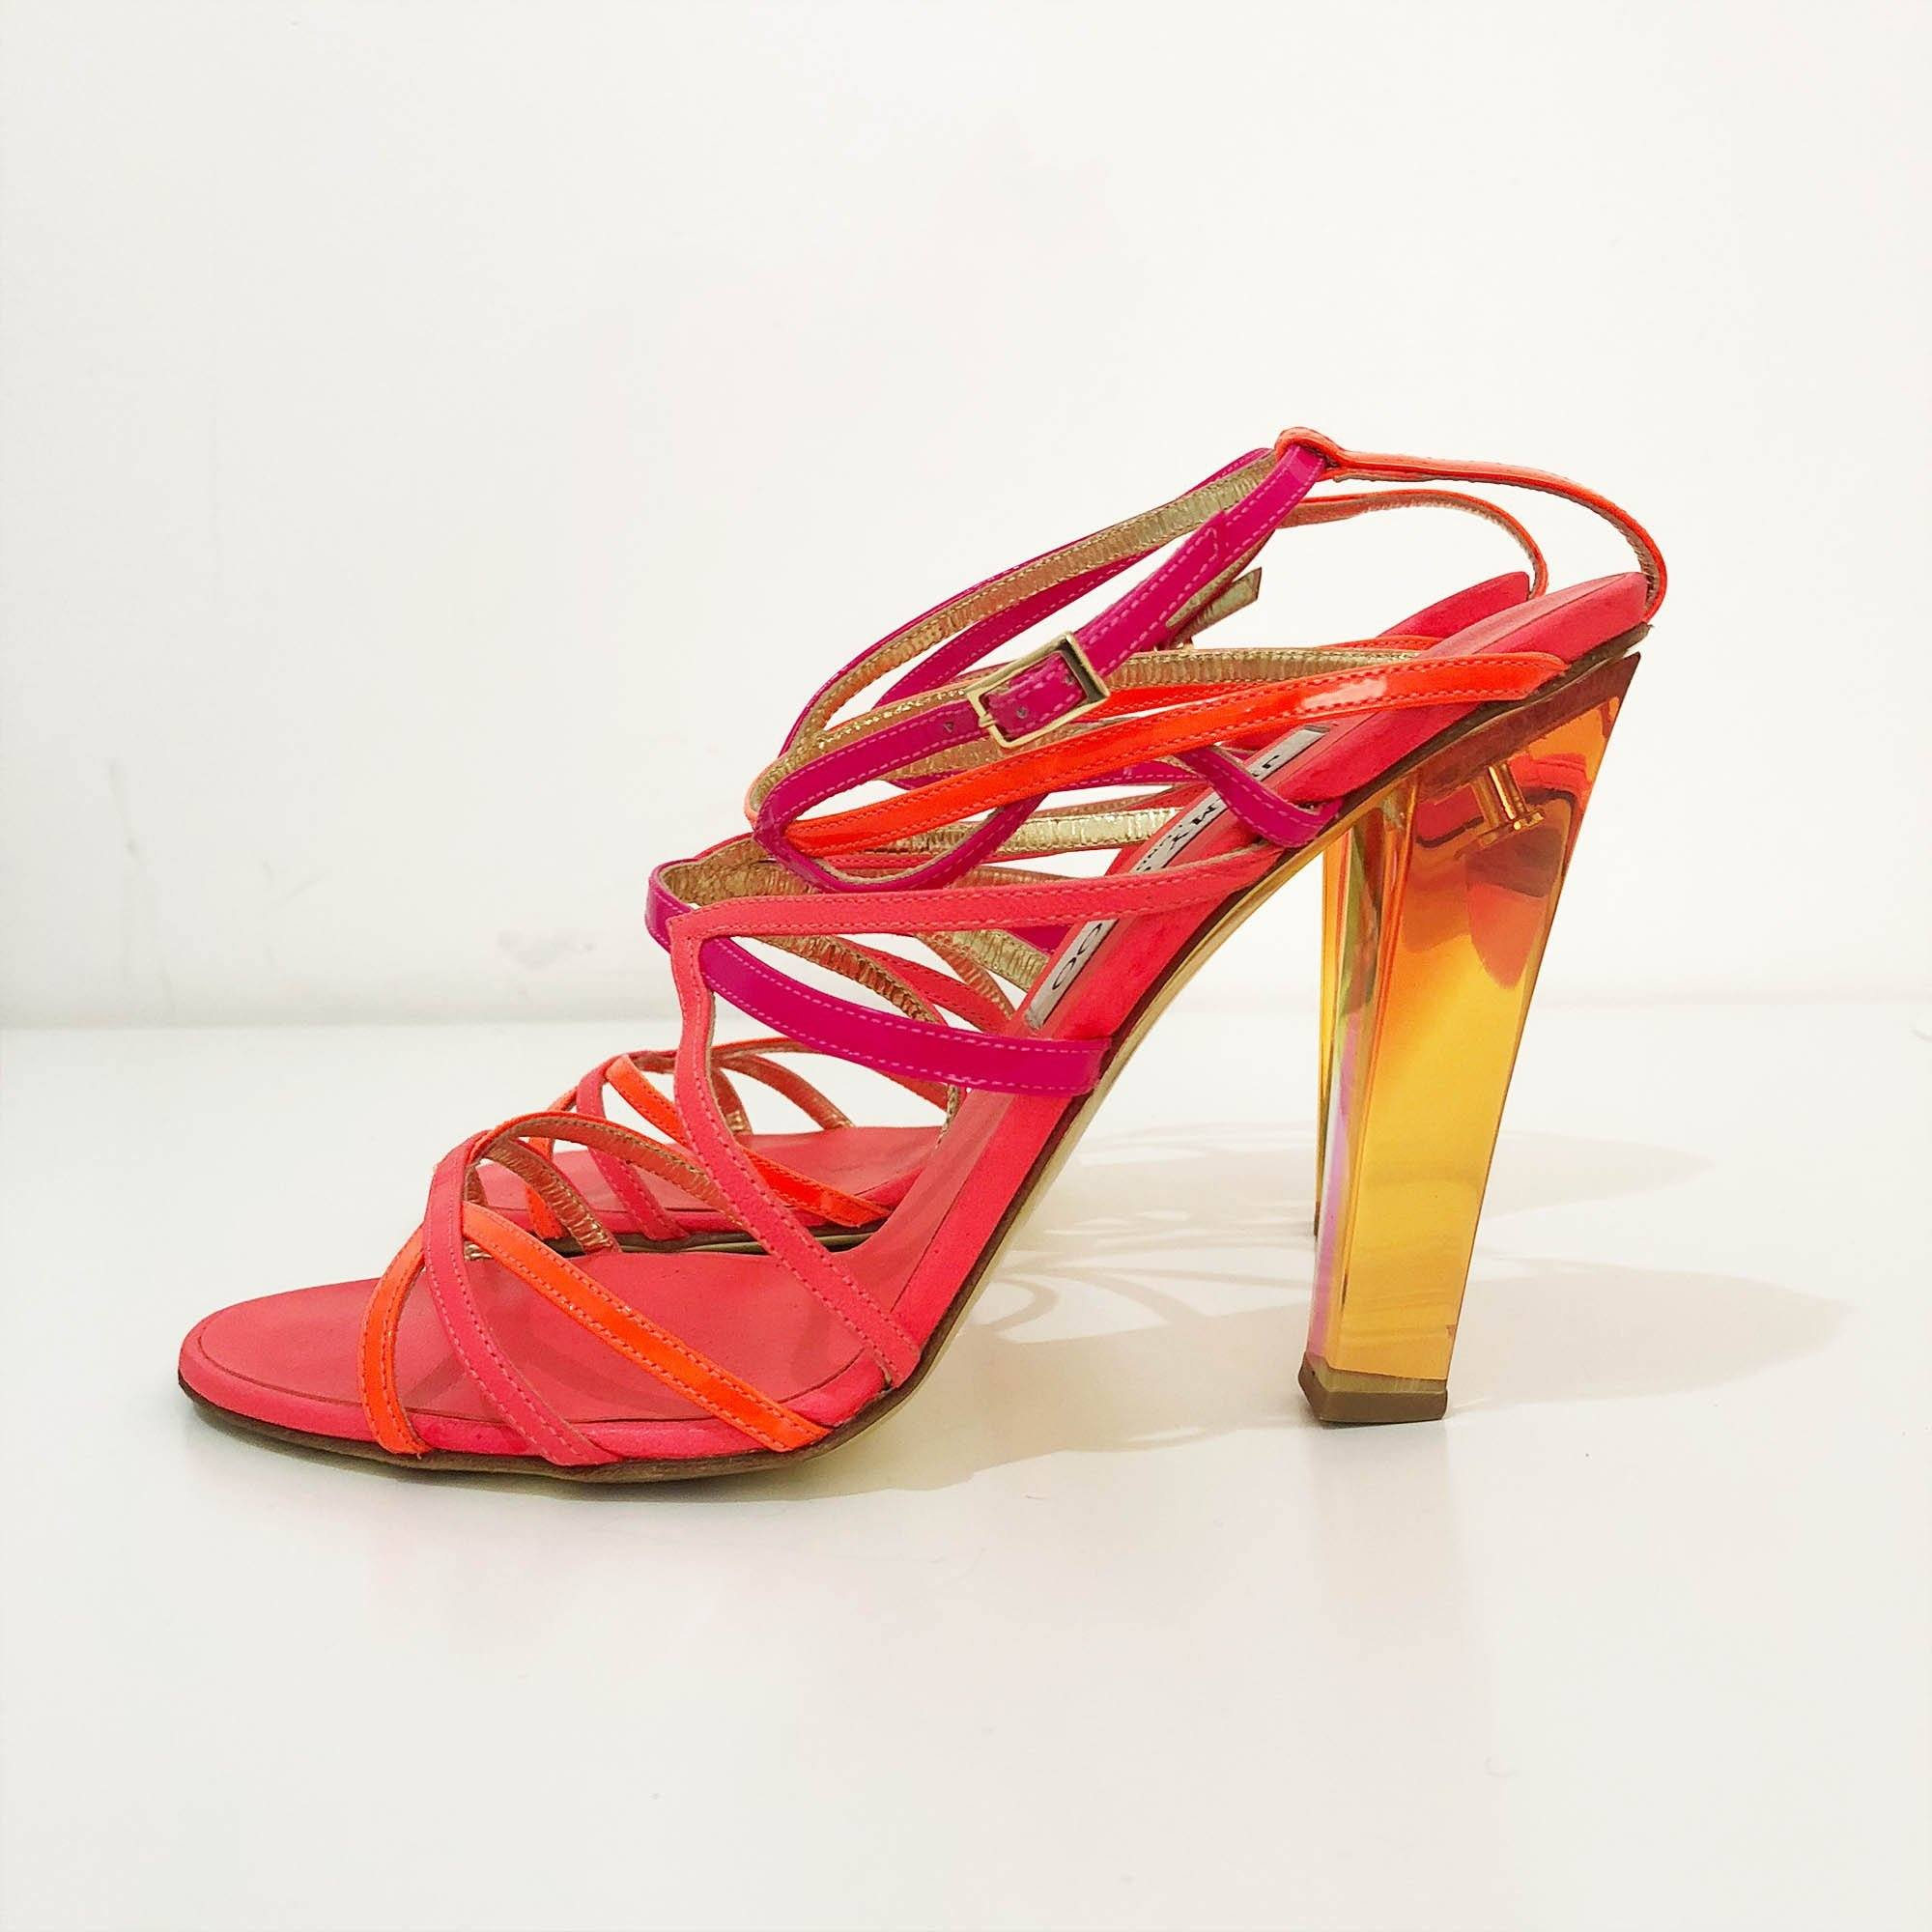 Jimmy Choo Neon Pink and Orange Sandal Heels